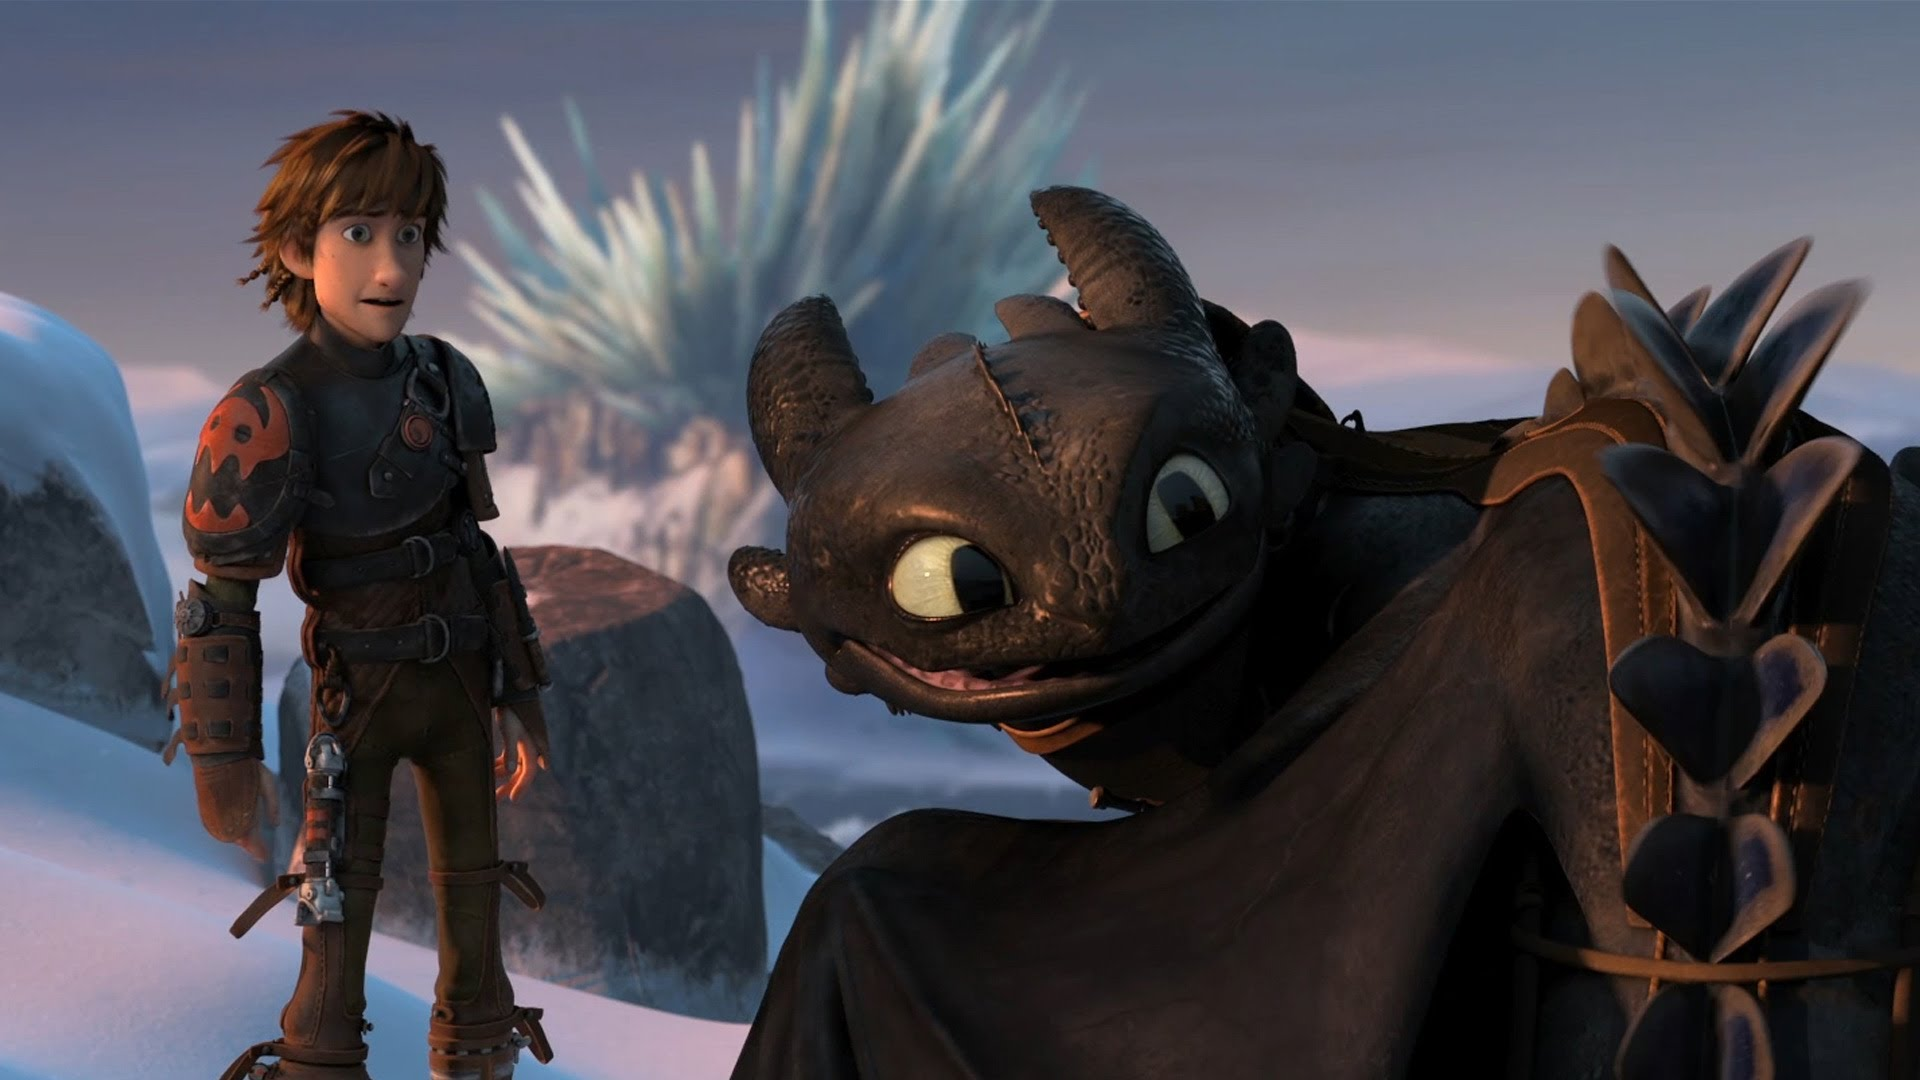 How To Train Your Dragon 2 (2014) Review: Jay Baruchel, Gerard Butler